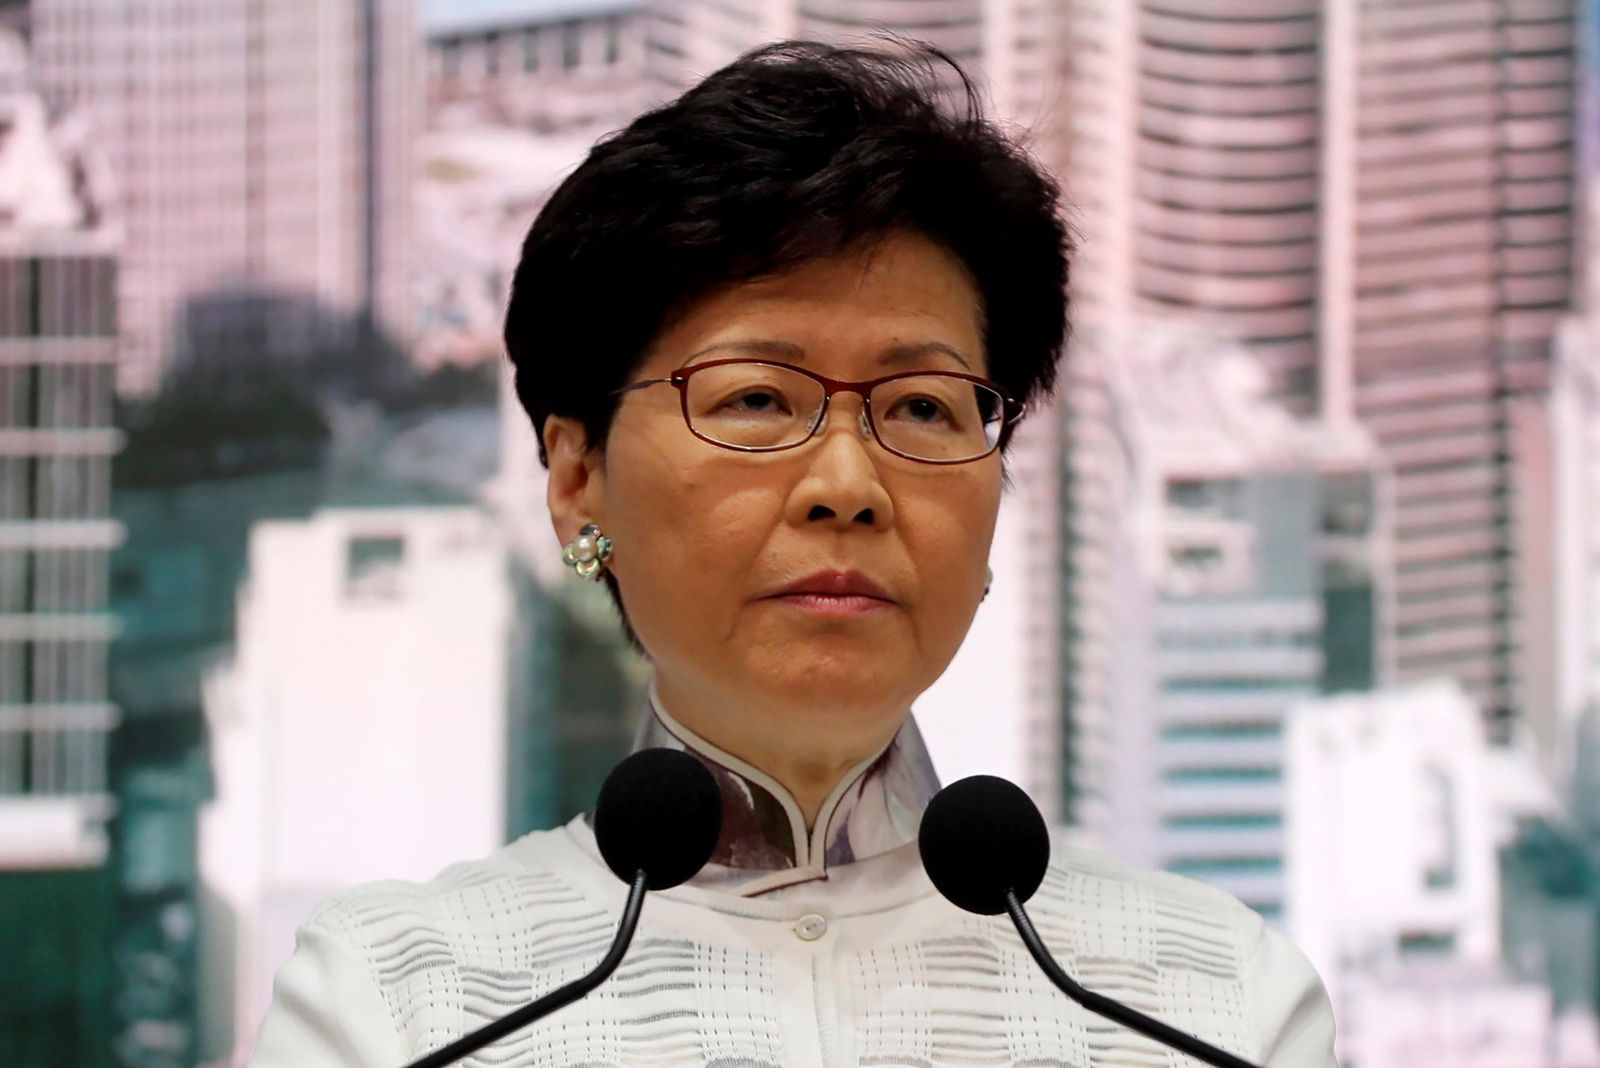 Hong Kong's Chief Executive Carrie Lam speaks at a press conference in Hong Kong Saturday, June 15, 2019. (AP Photo/Kin Cheung)